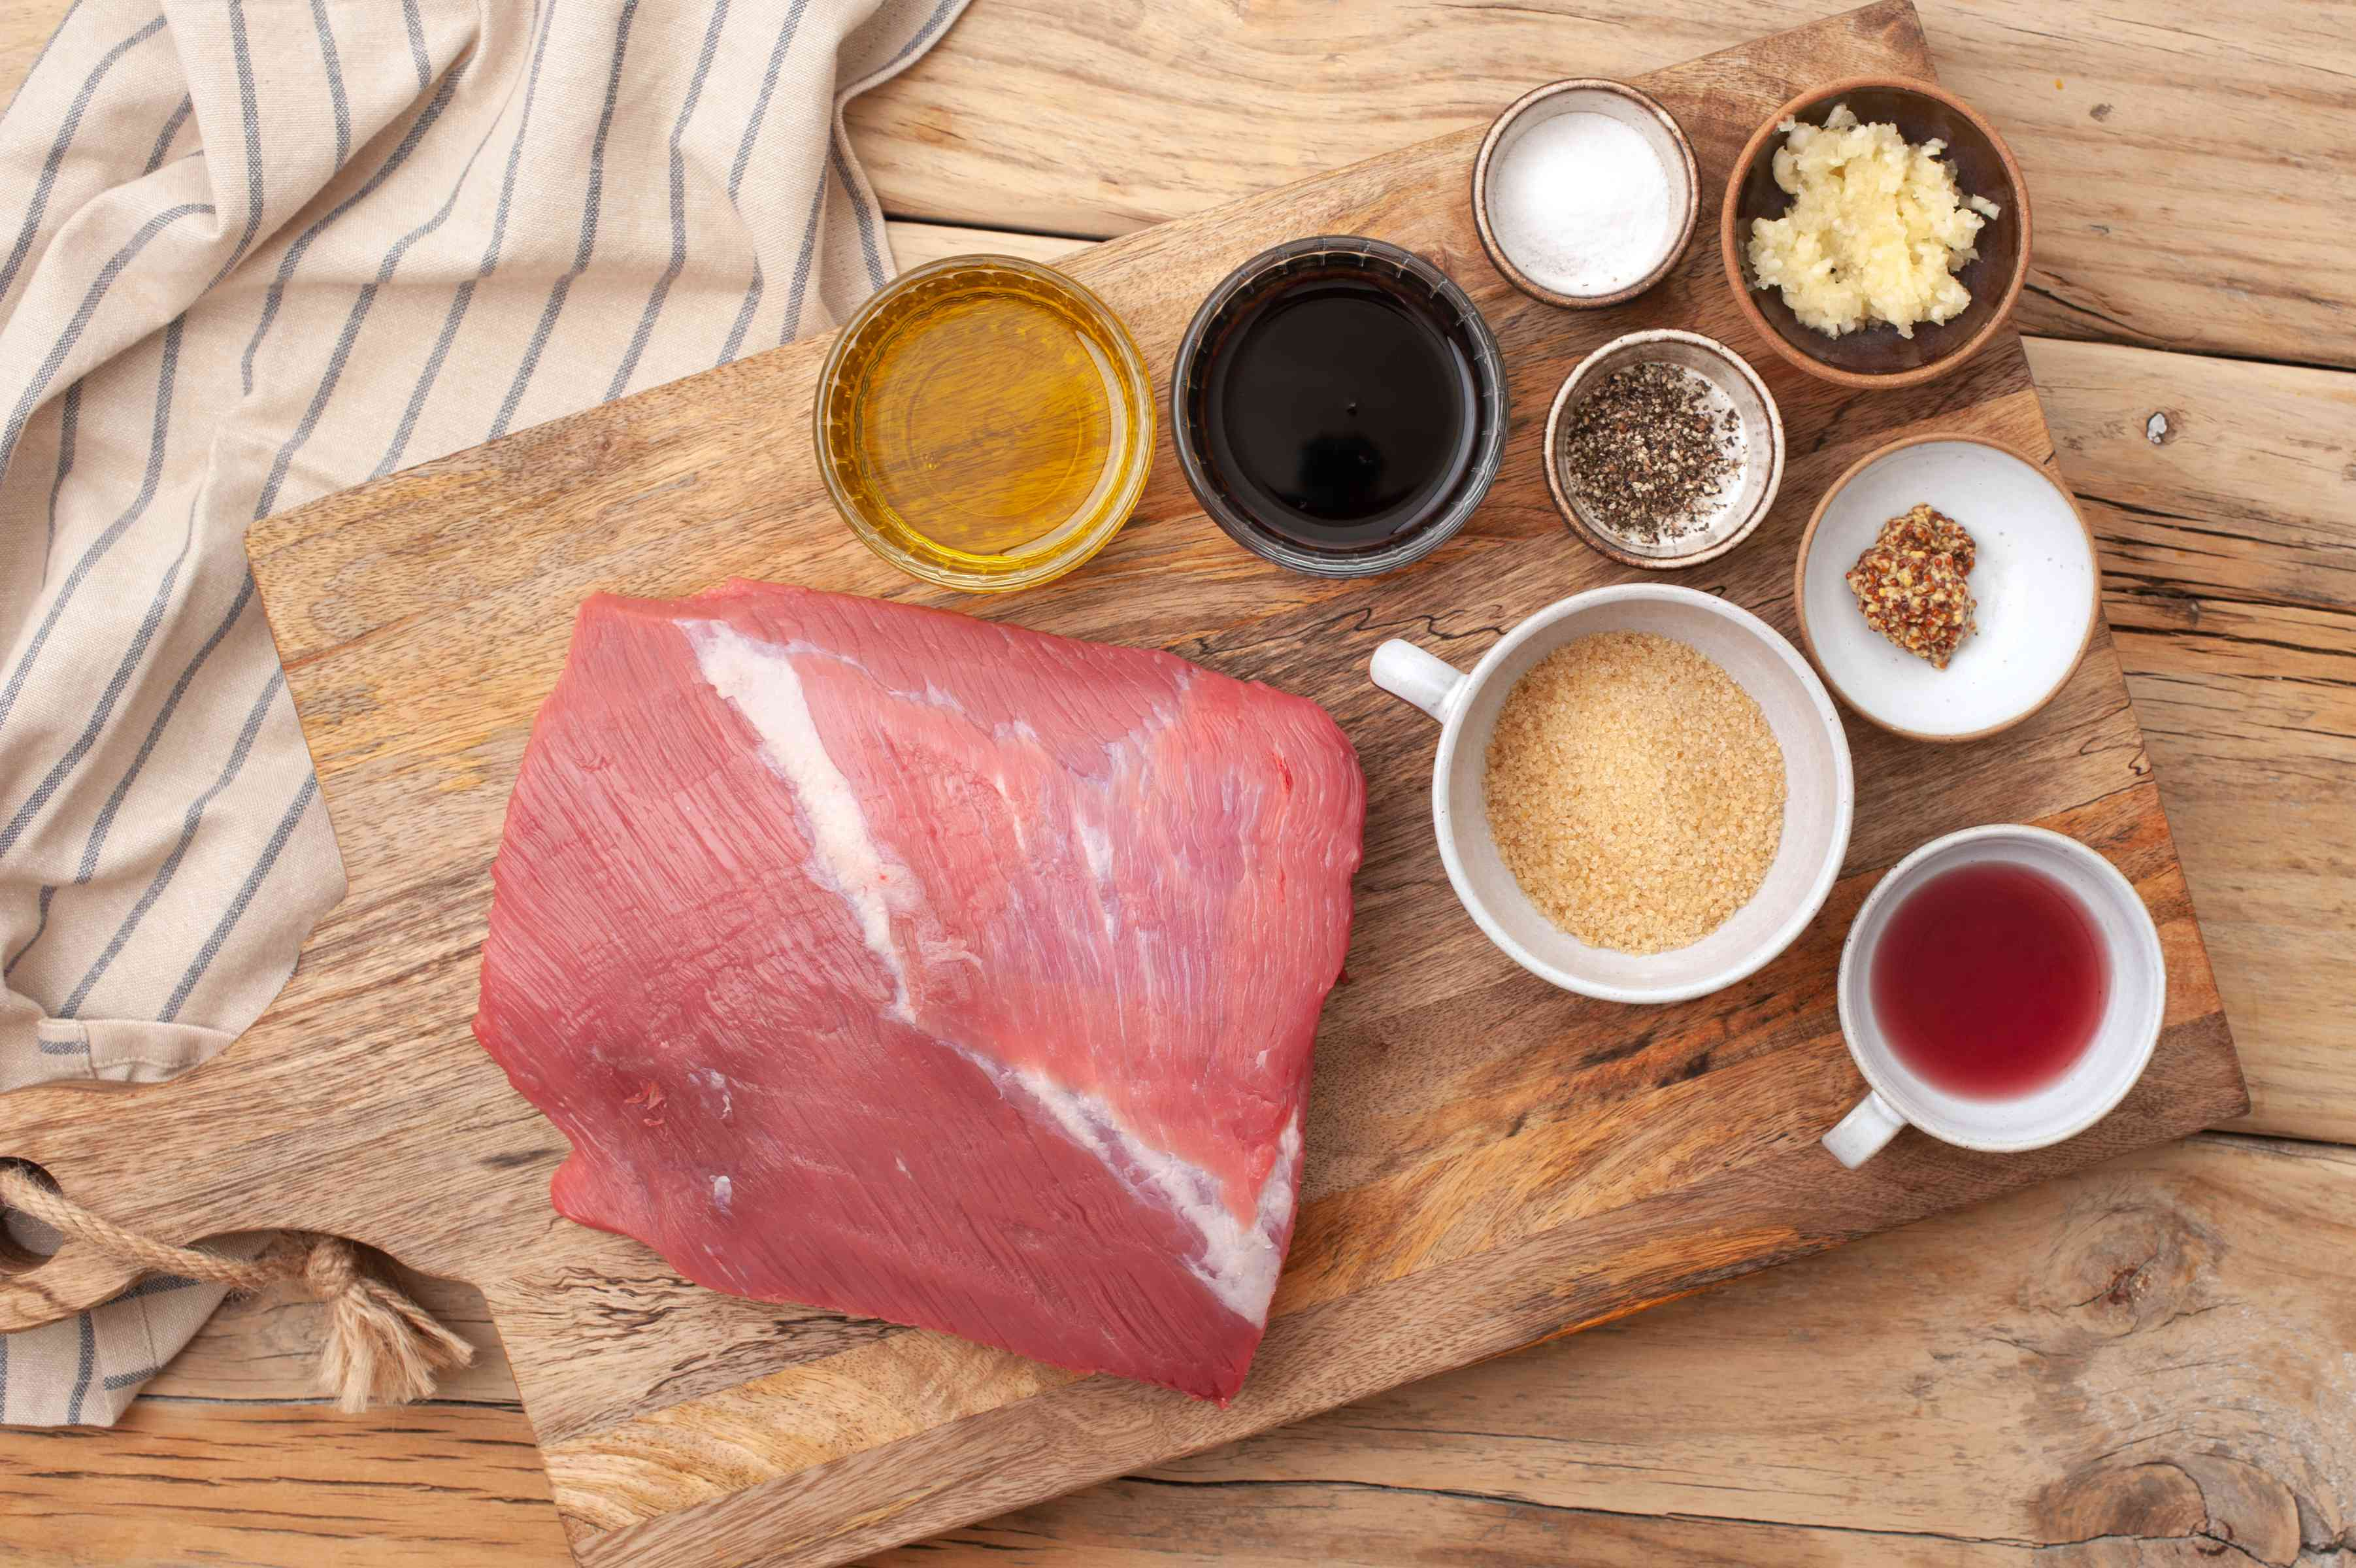 Ingredients for best grilled marinated flank steak